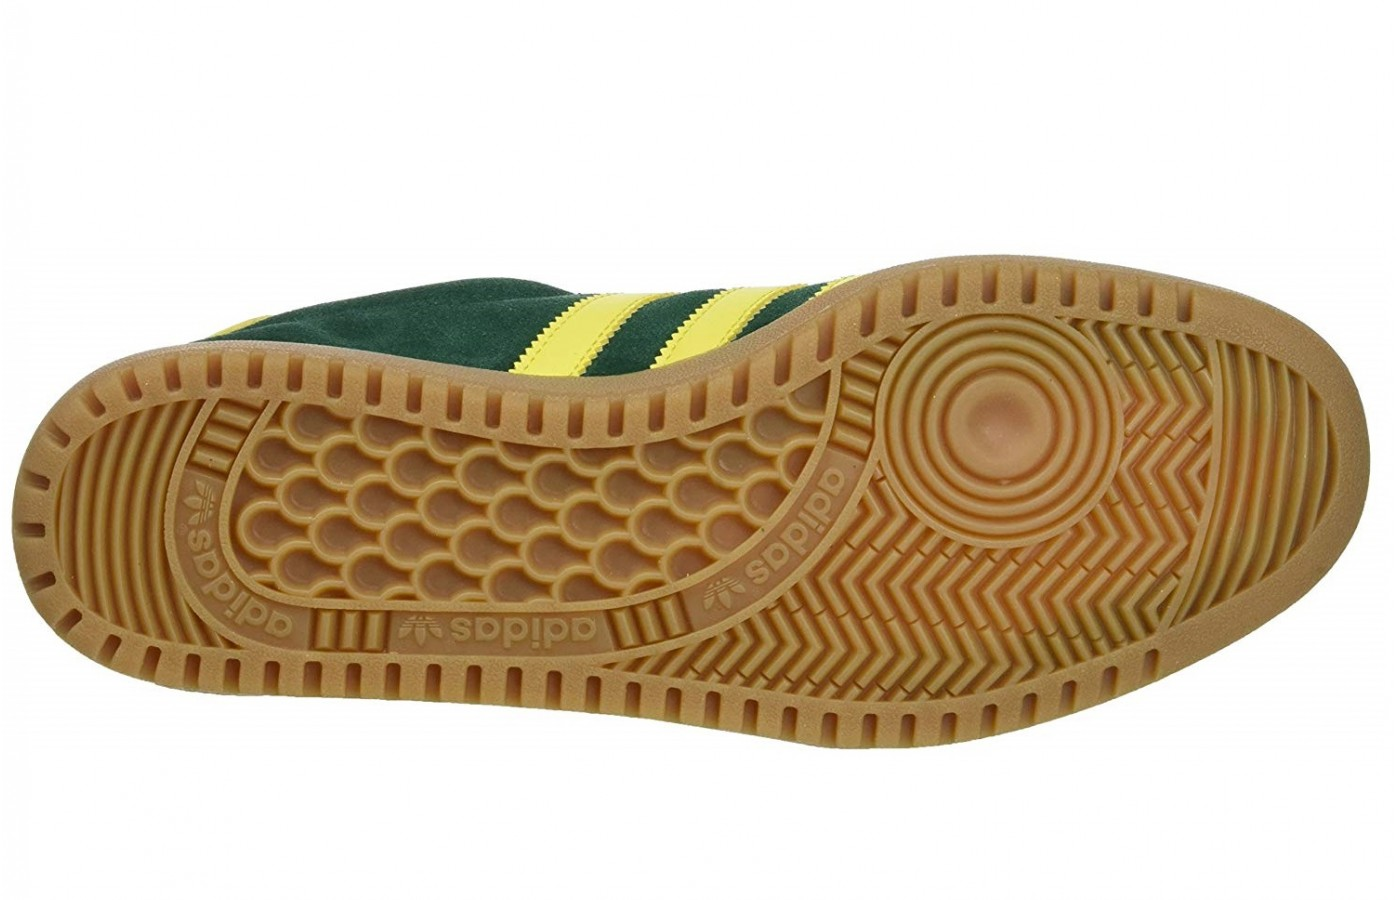 The outsole of this product is made of a gum rubber material.